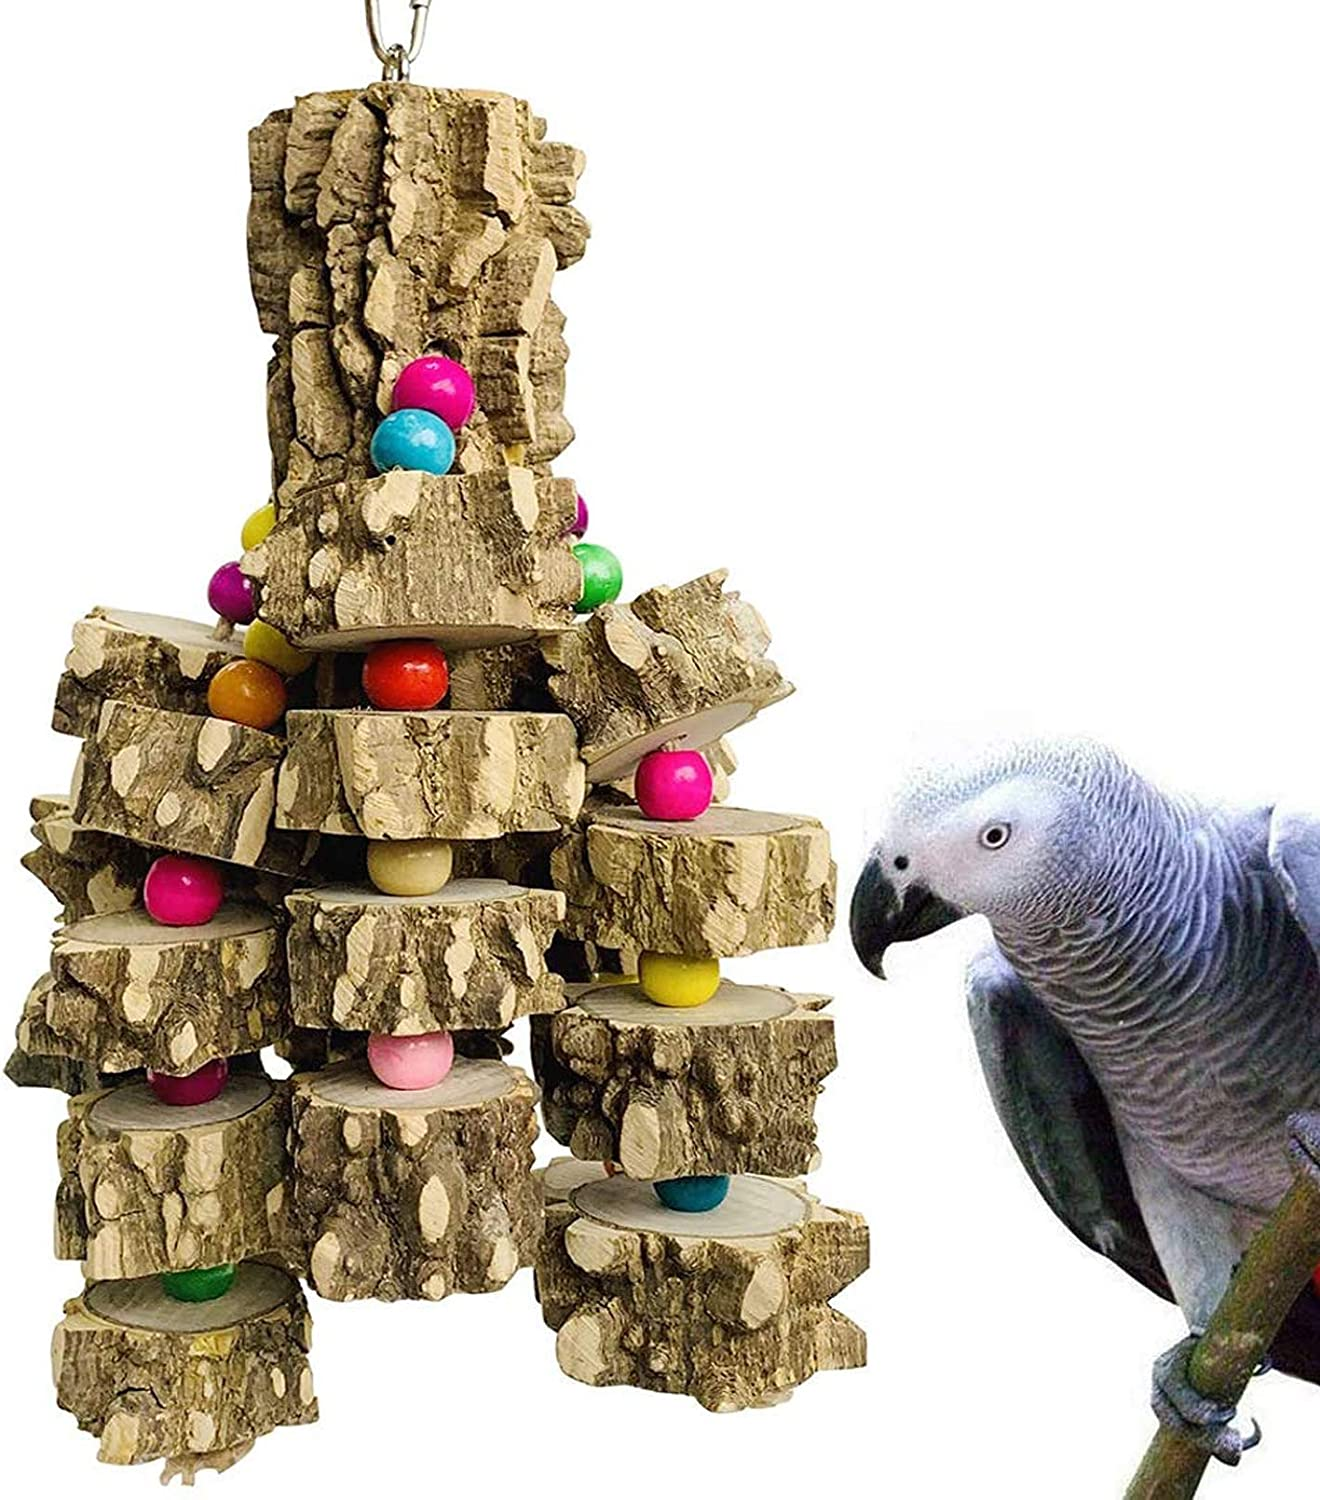 Vaorwne 8 Pcs Set Bird Parrot Swing Chewing Toys-Natural Wood Bird Climbing Hanging Cage Toys Suitable for Small Parakeets Cockatiels Conures